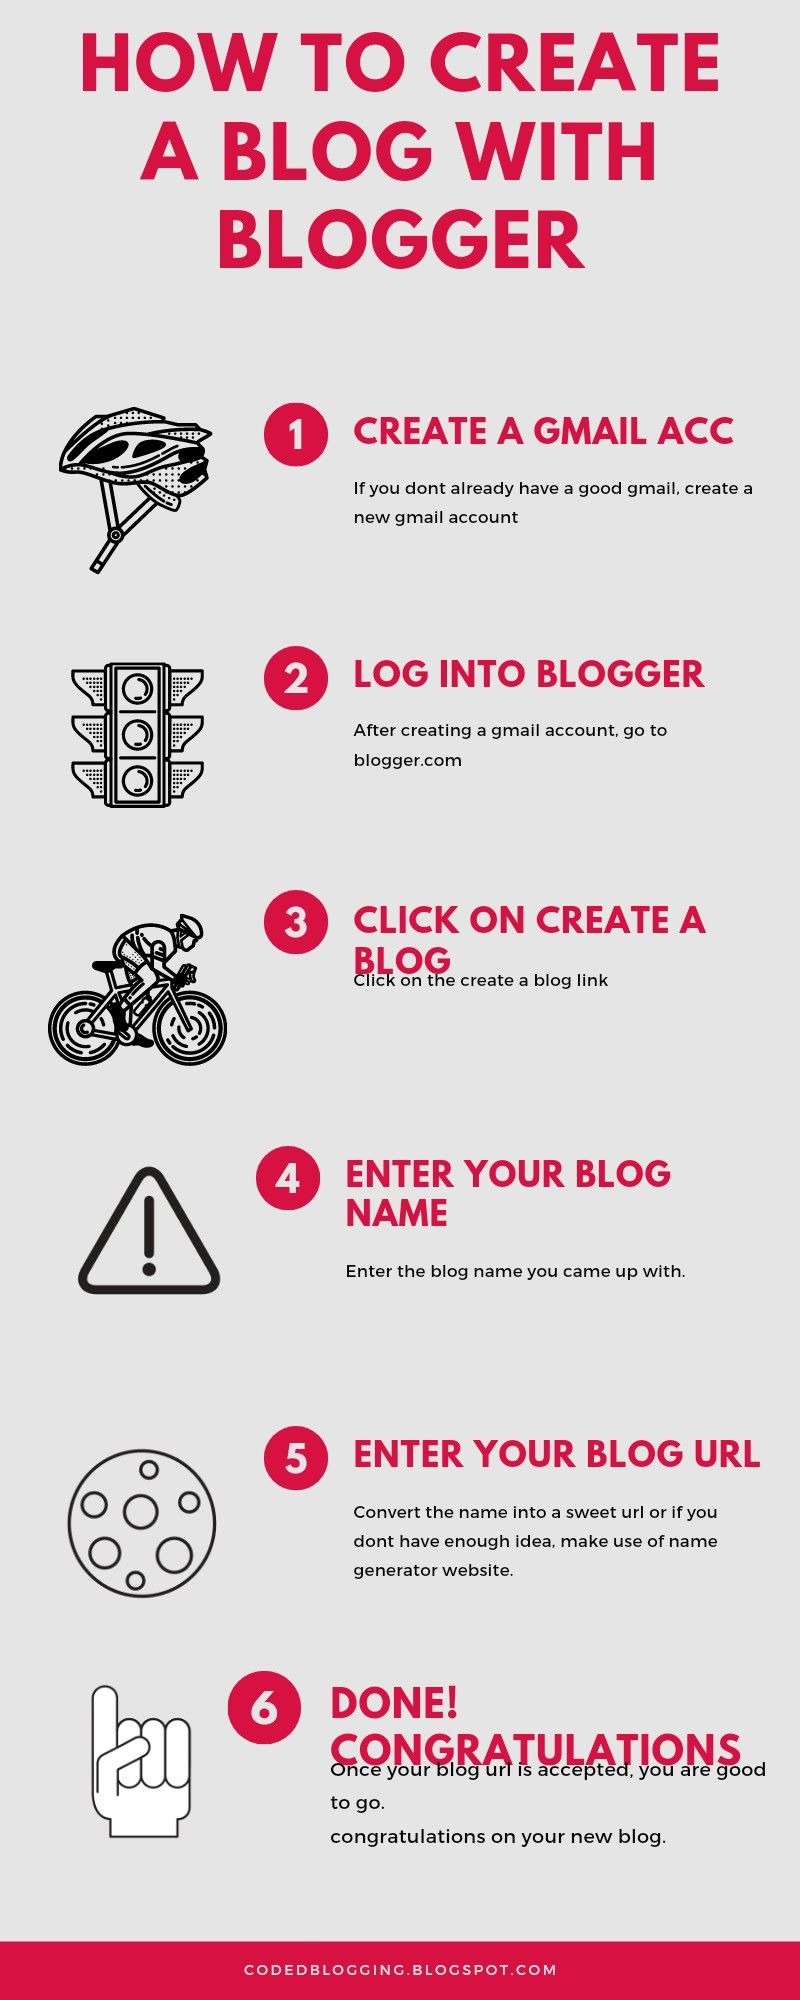 How To Start A Blogger Blog Step By Step Guild Buy Instagram Followers Content Marketing Bicycle Safety